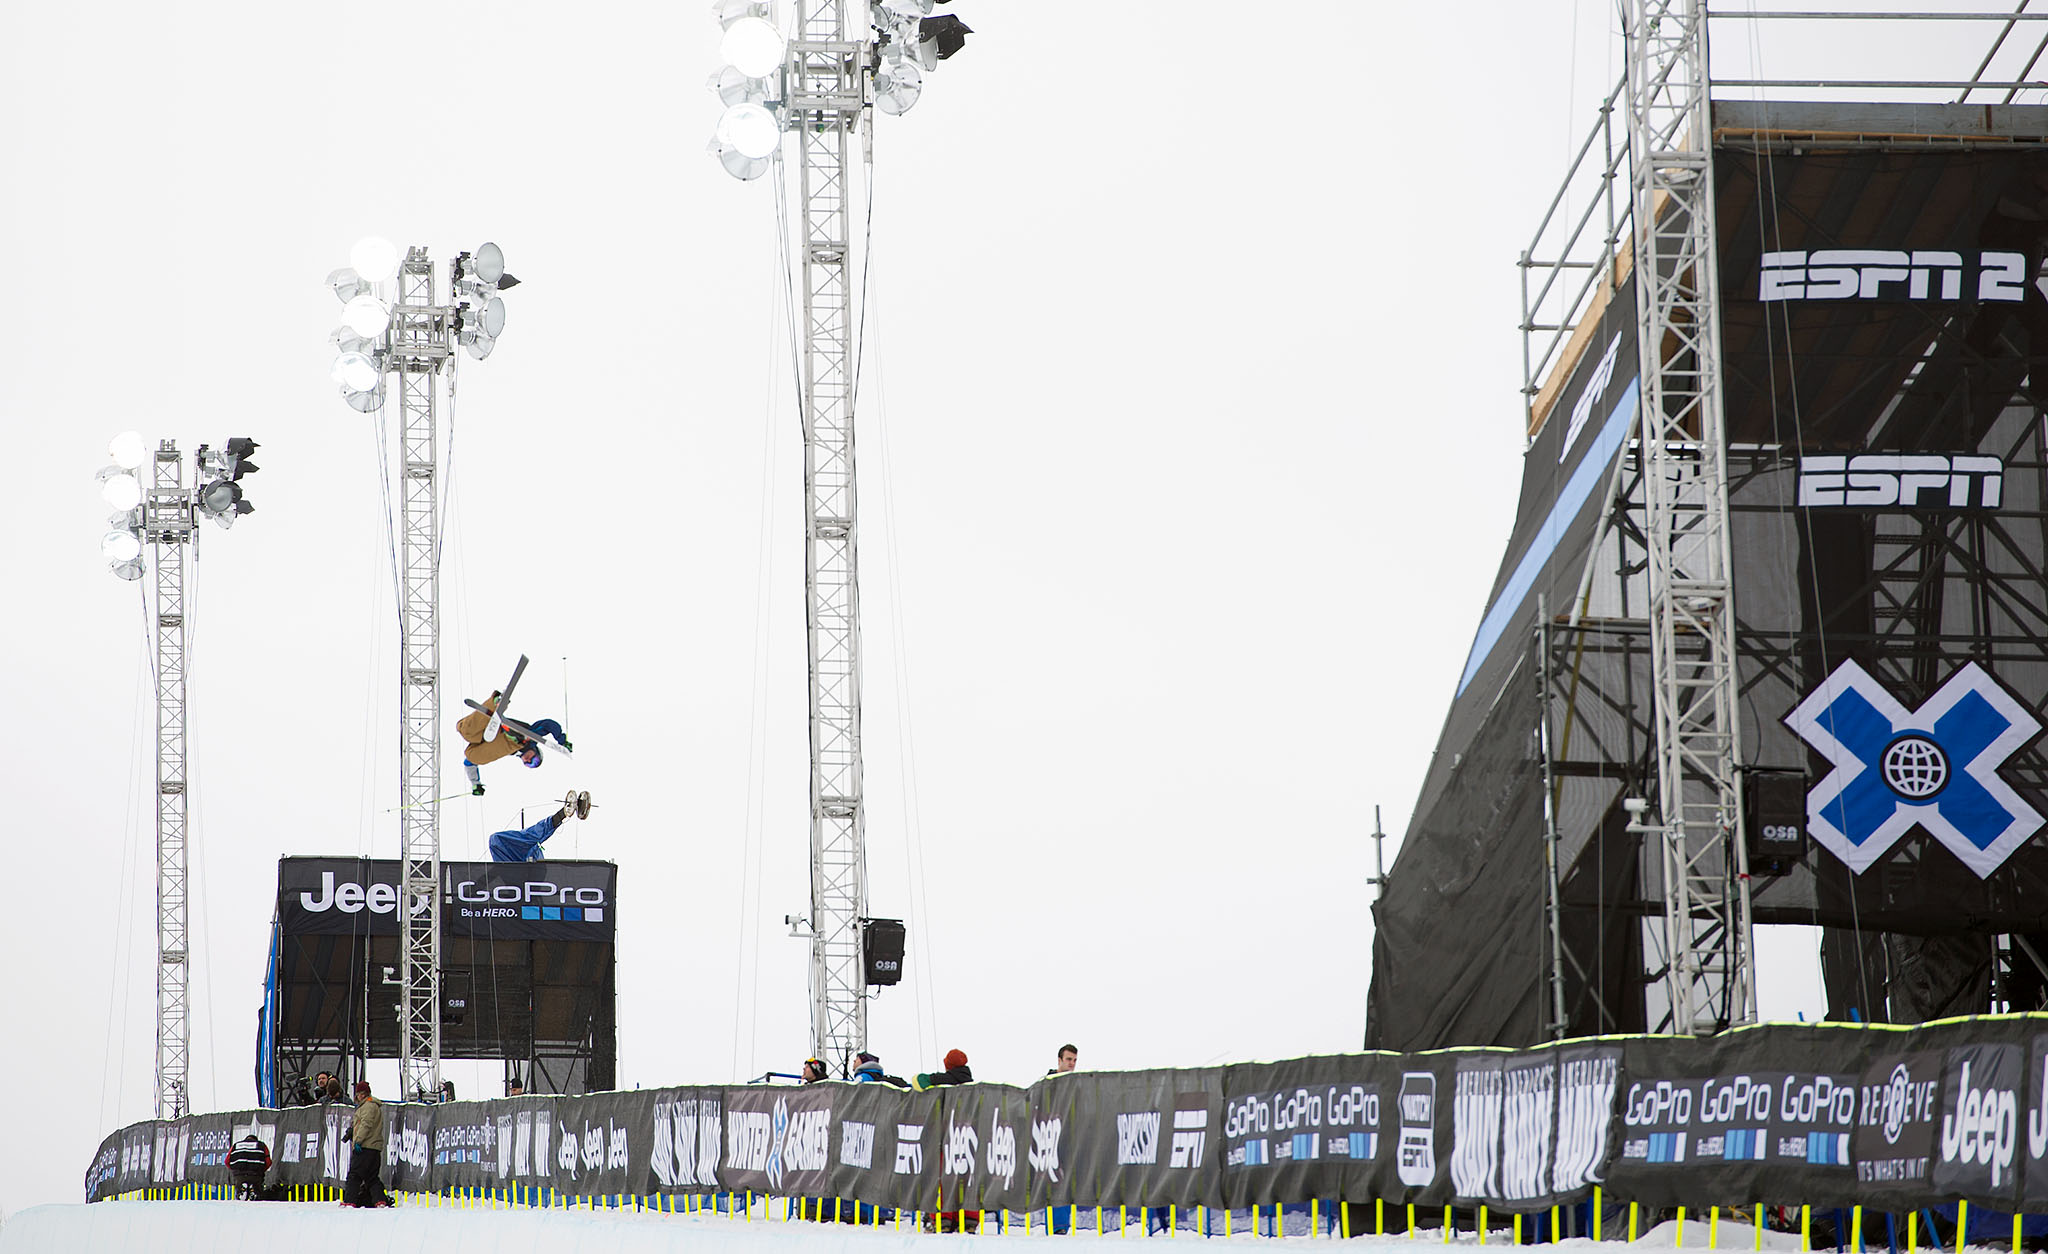 David Wise, SuperPipe Elims